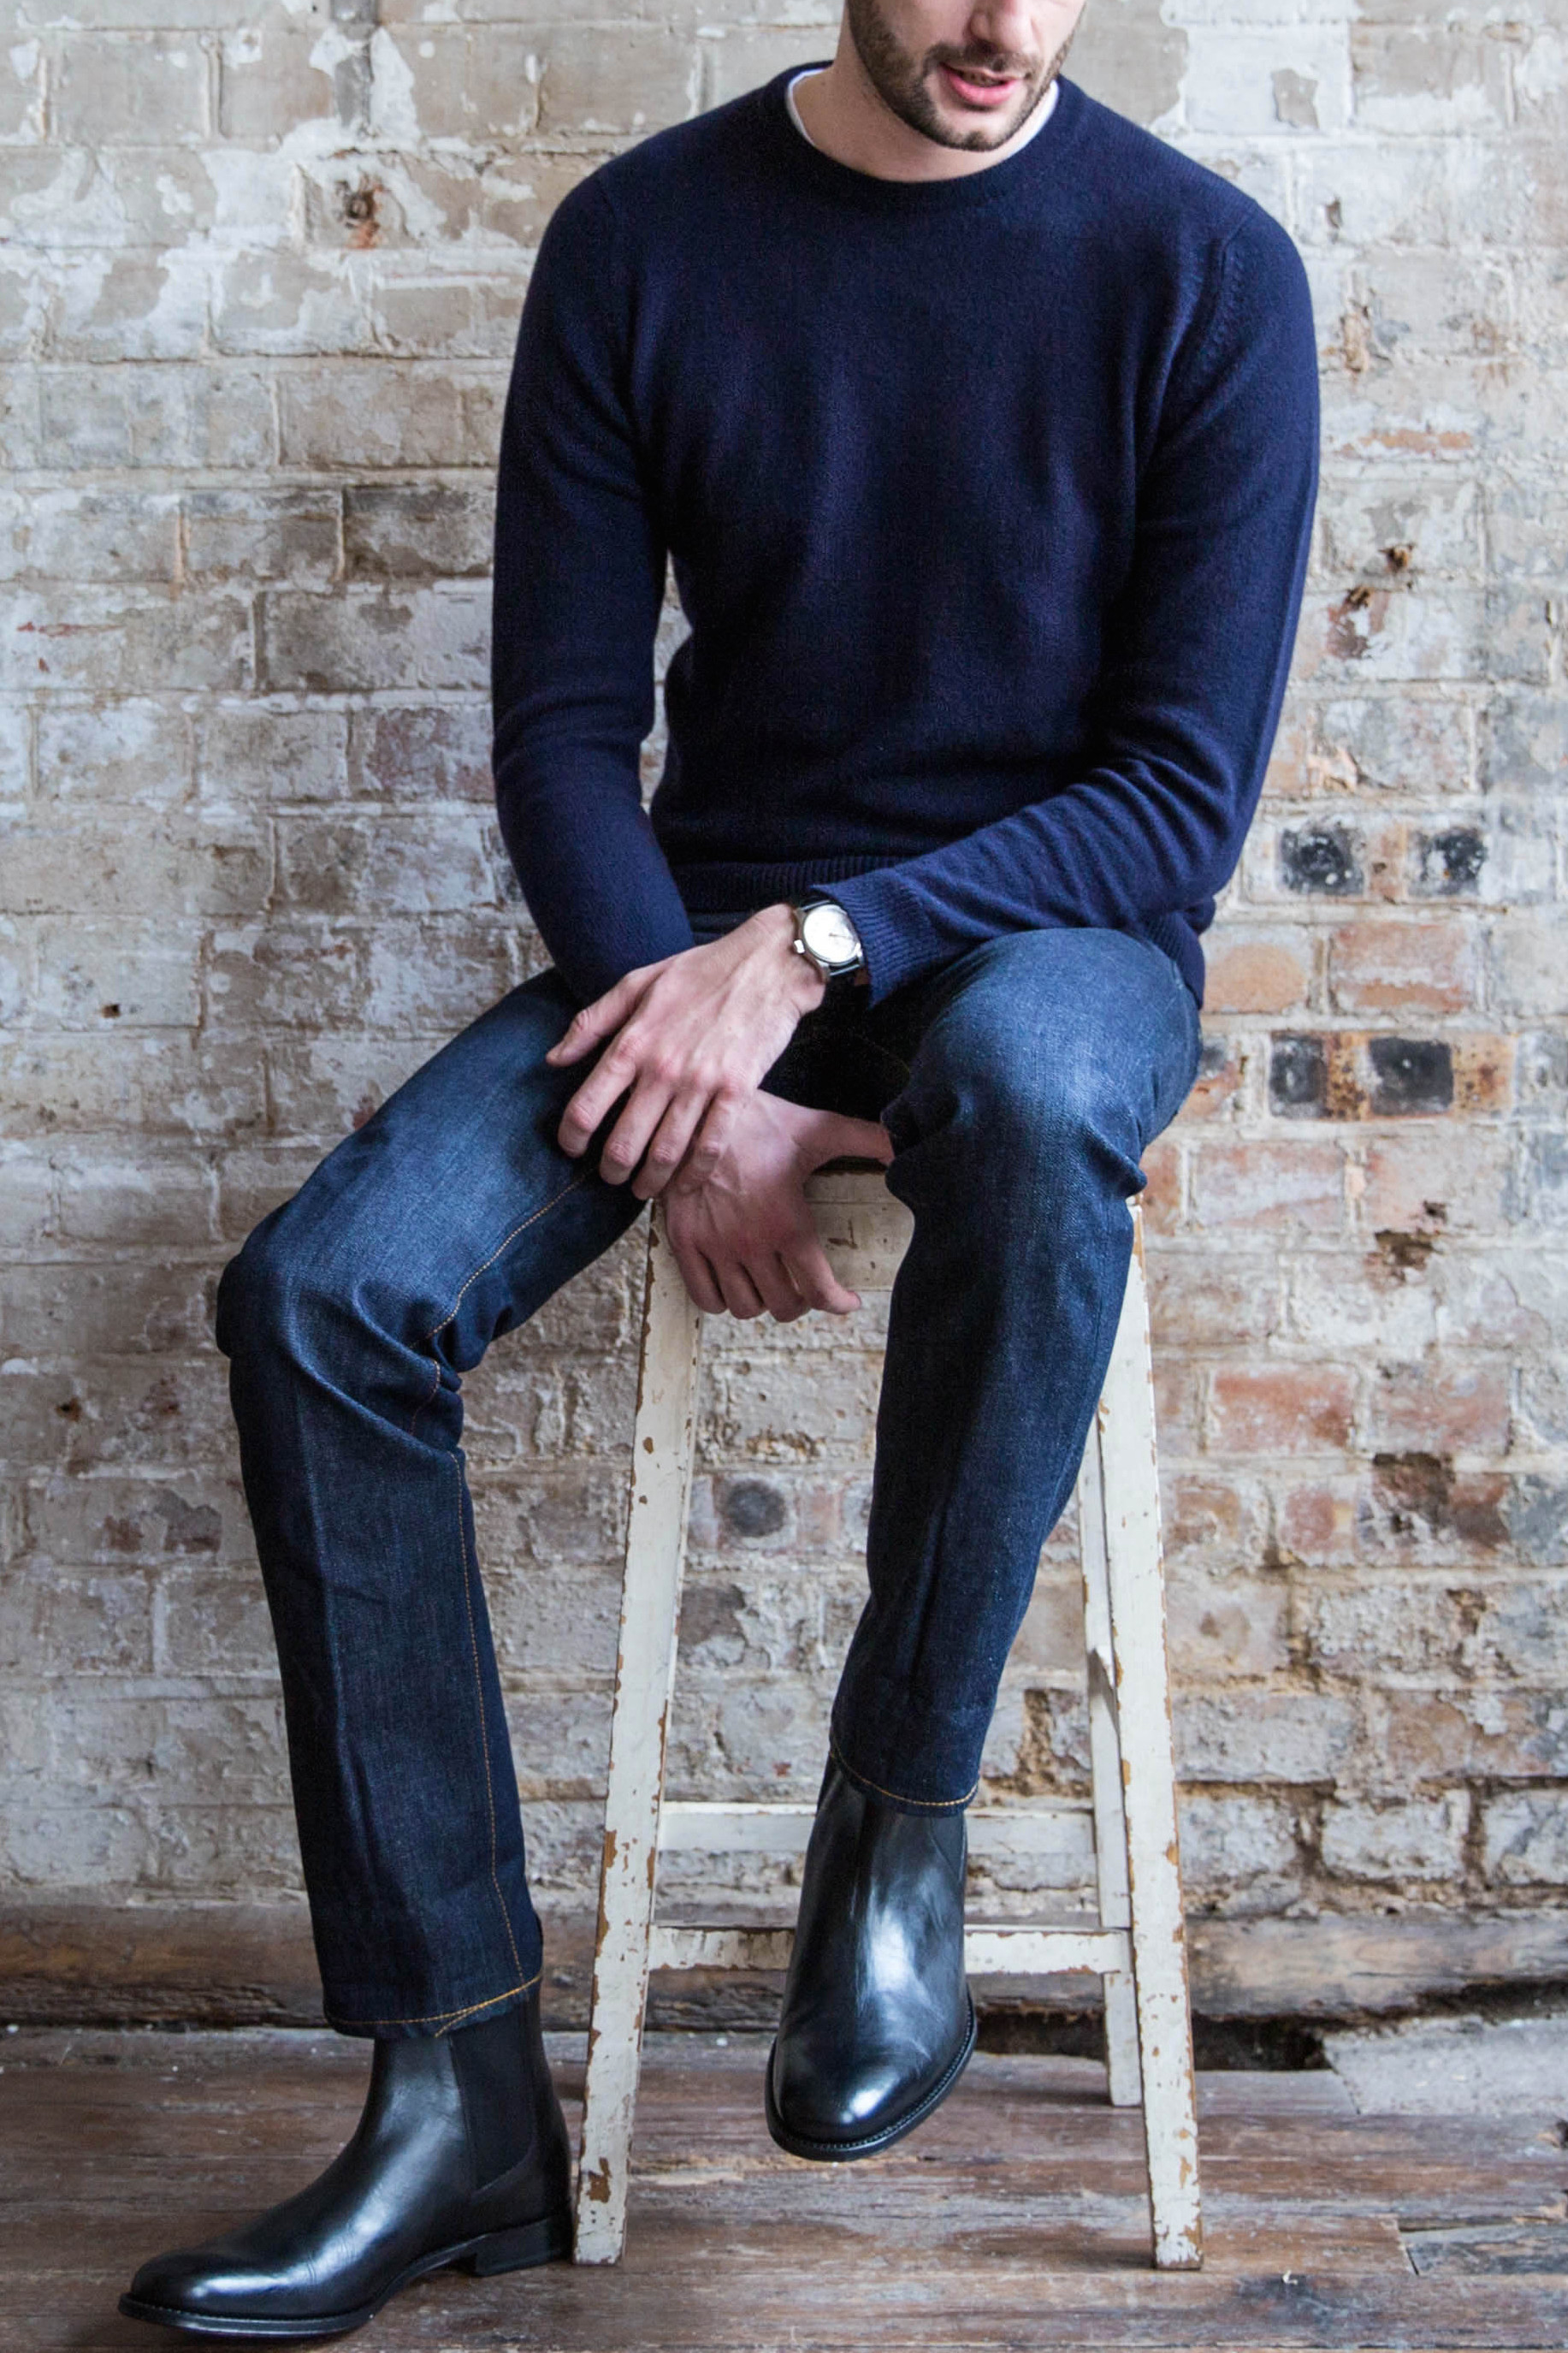 Men's outfit idea for 2021 with navy crew neck knitted sweater, dark blue jeans, leather strap watch, black chelsea boots. Suitable for spring, fall and winter.